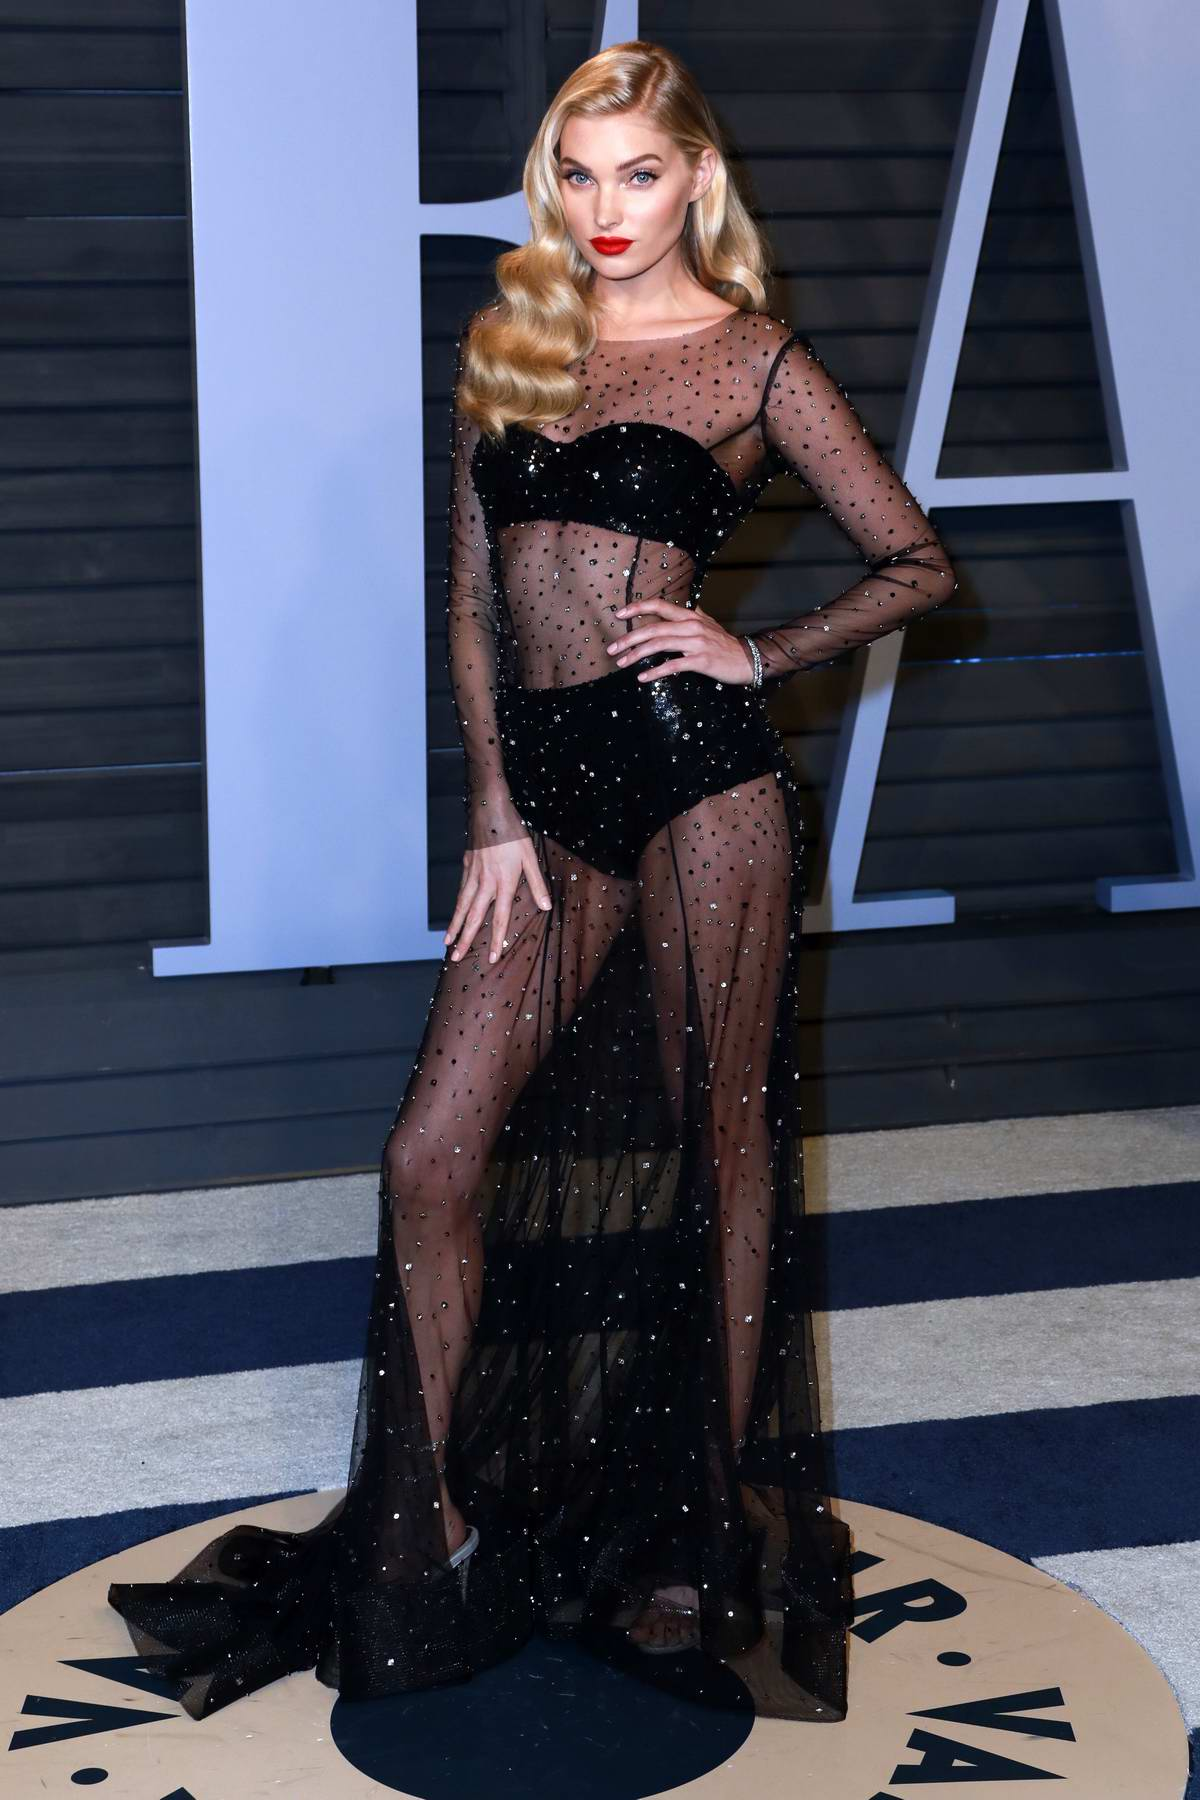 Elsa Hosk attends 2018 Vanity Fair Oscar Party at the Wallis Annenberg Center for the Performing Arts in Beverly Hills, Los Angeles